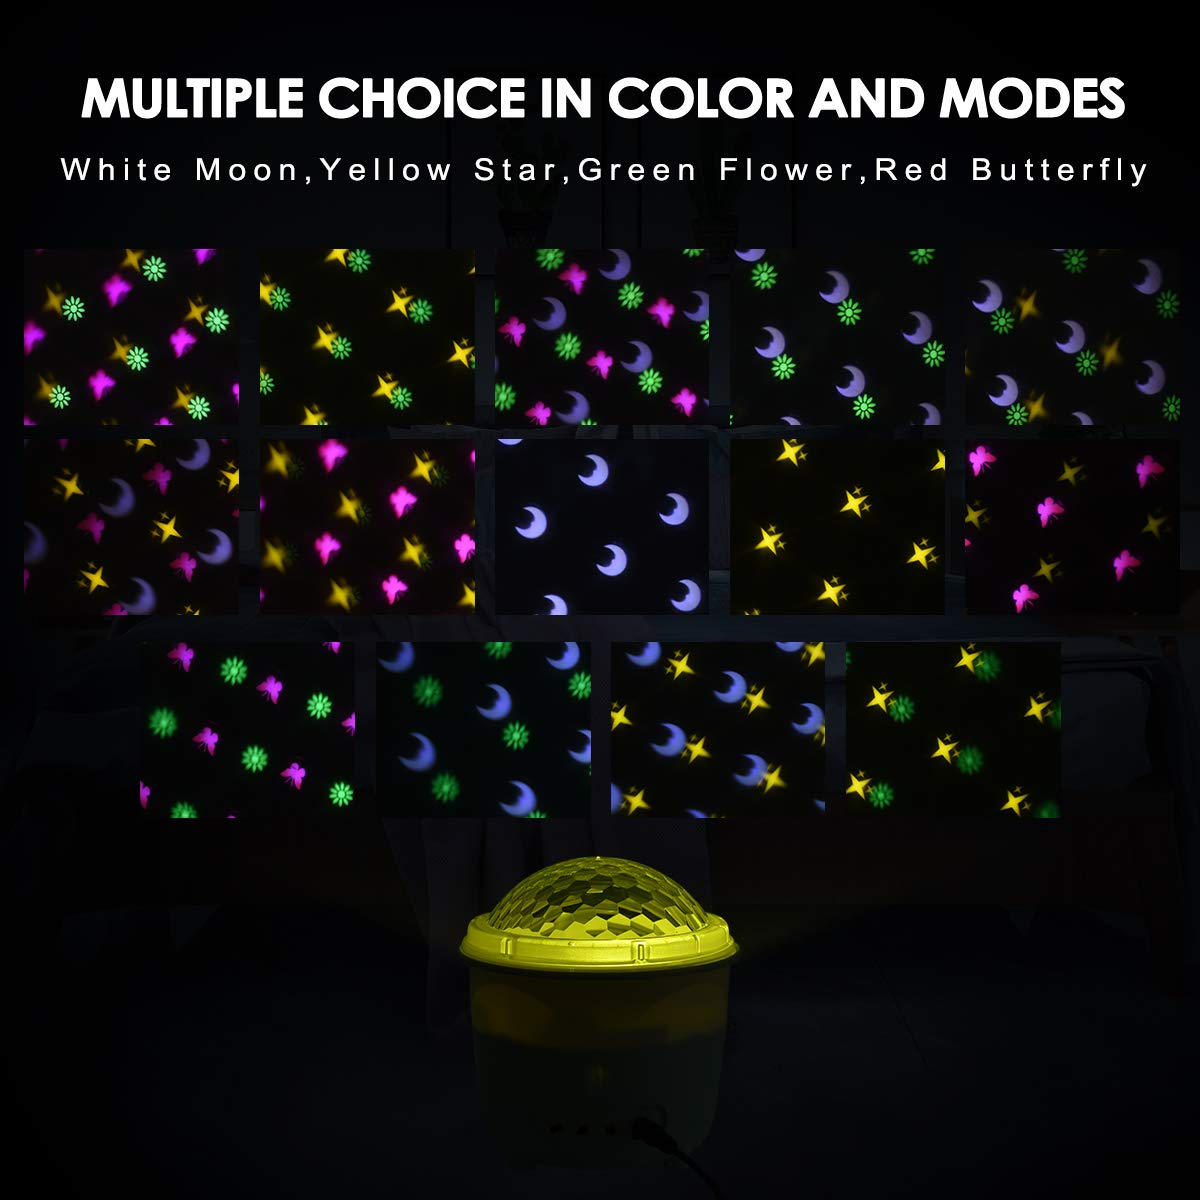 Sound Activated Mood Nursery Lamp For Baby Bedroom Living Room Night Light Projector Kids Night Lamp Projector Light 2 In 1 With Remote Control Timers Baby Night Lights